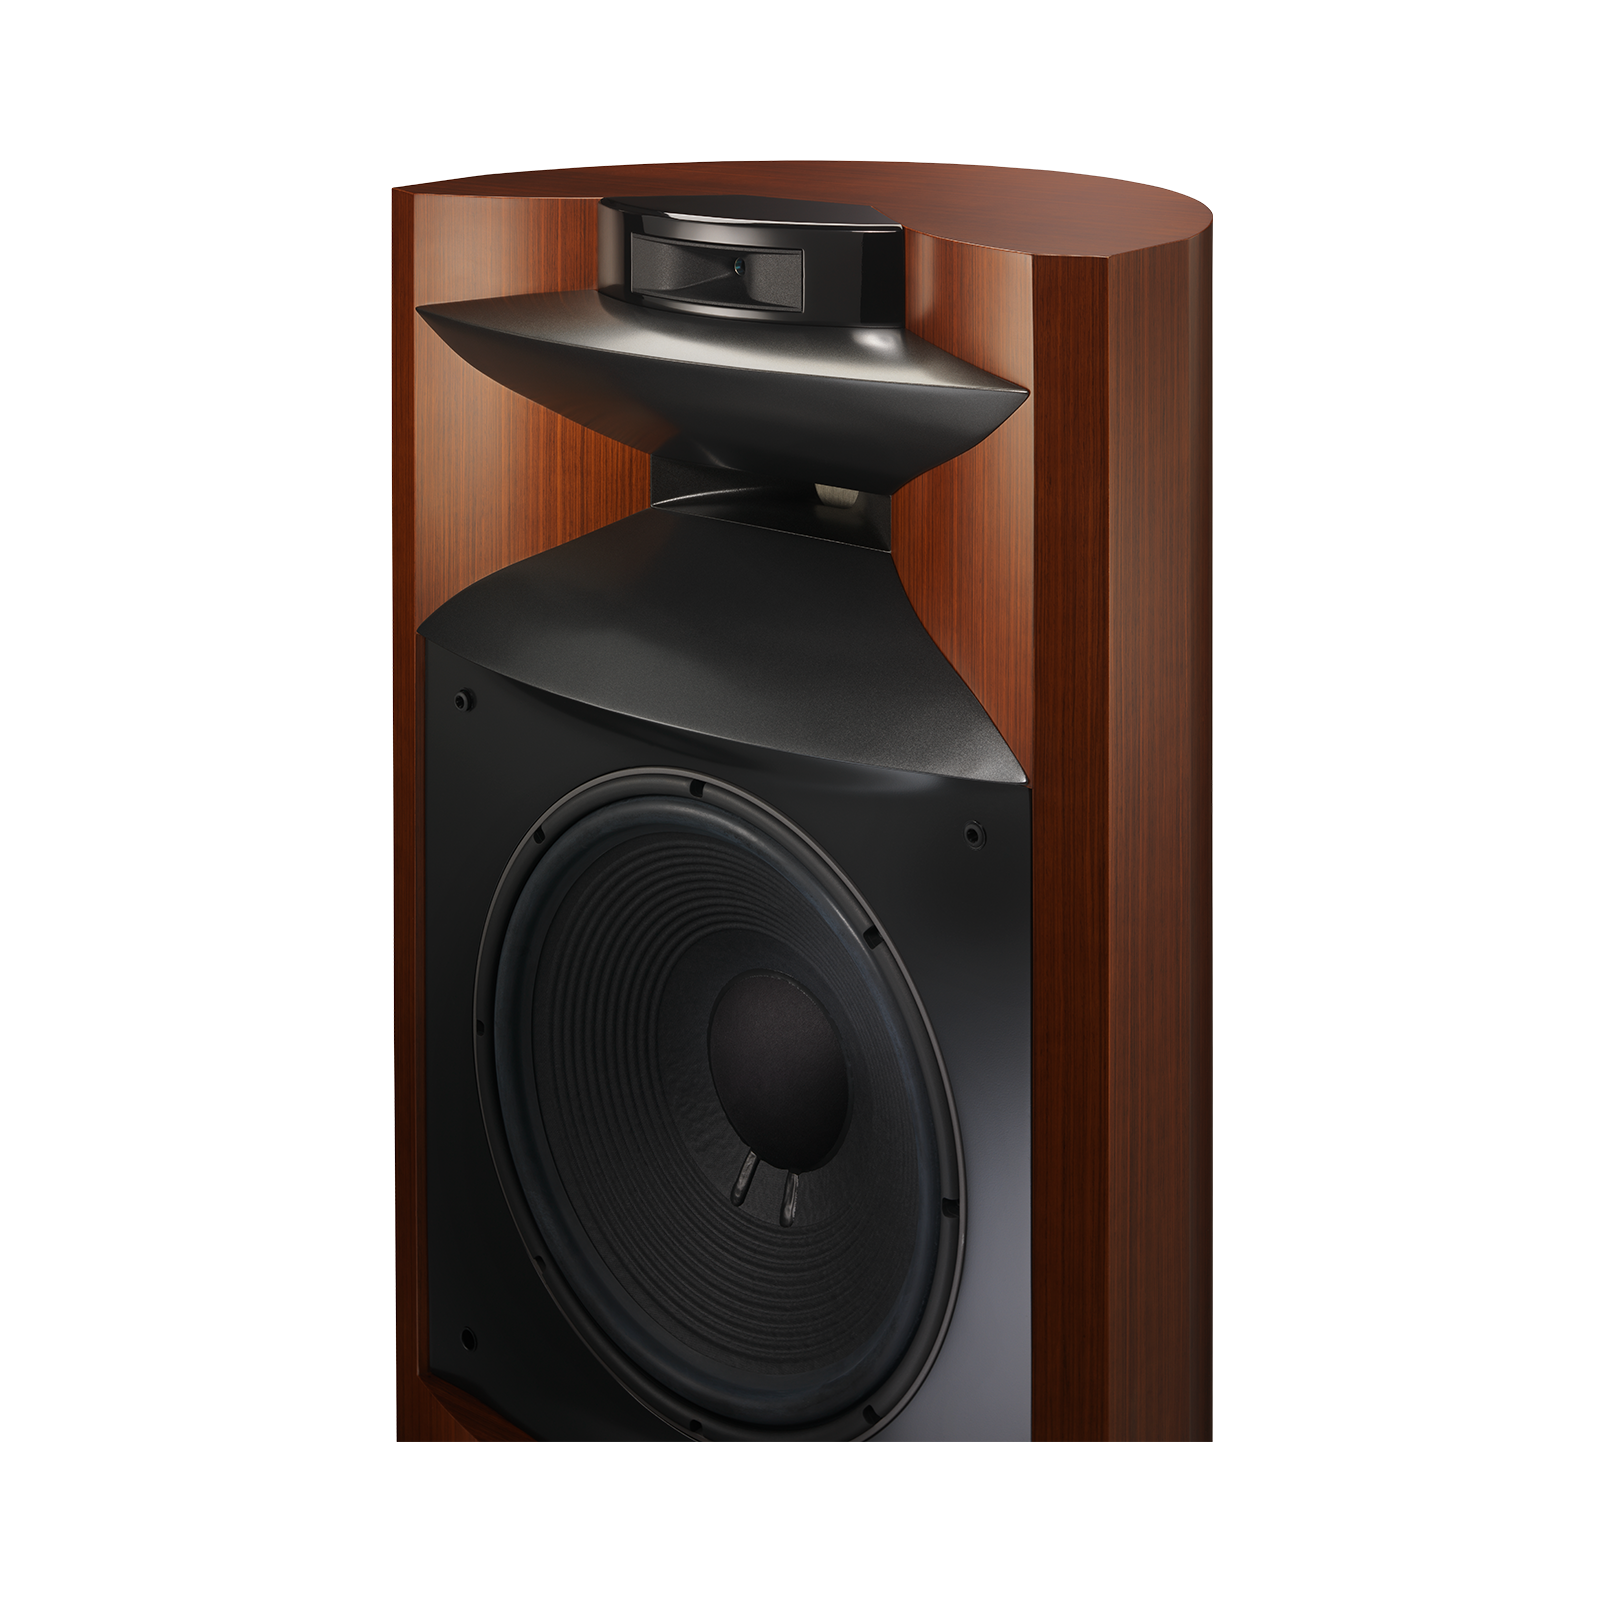 "K2 S9900 - Wood Grain - 3-way 15"" (380mm) Floorstanding Loudspeaker - Detailshot 4"